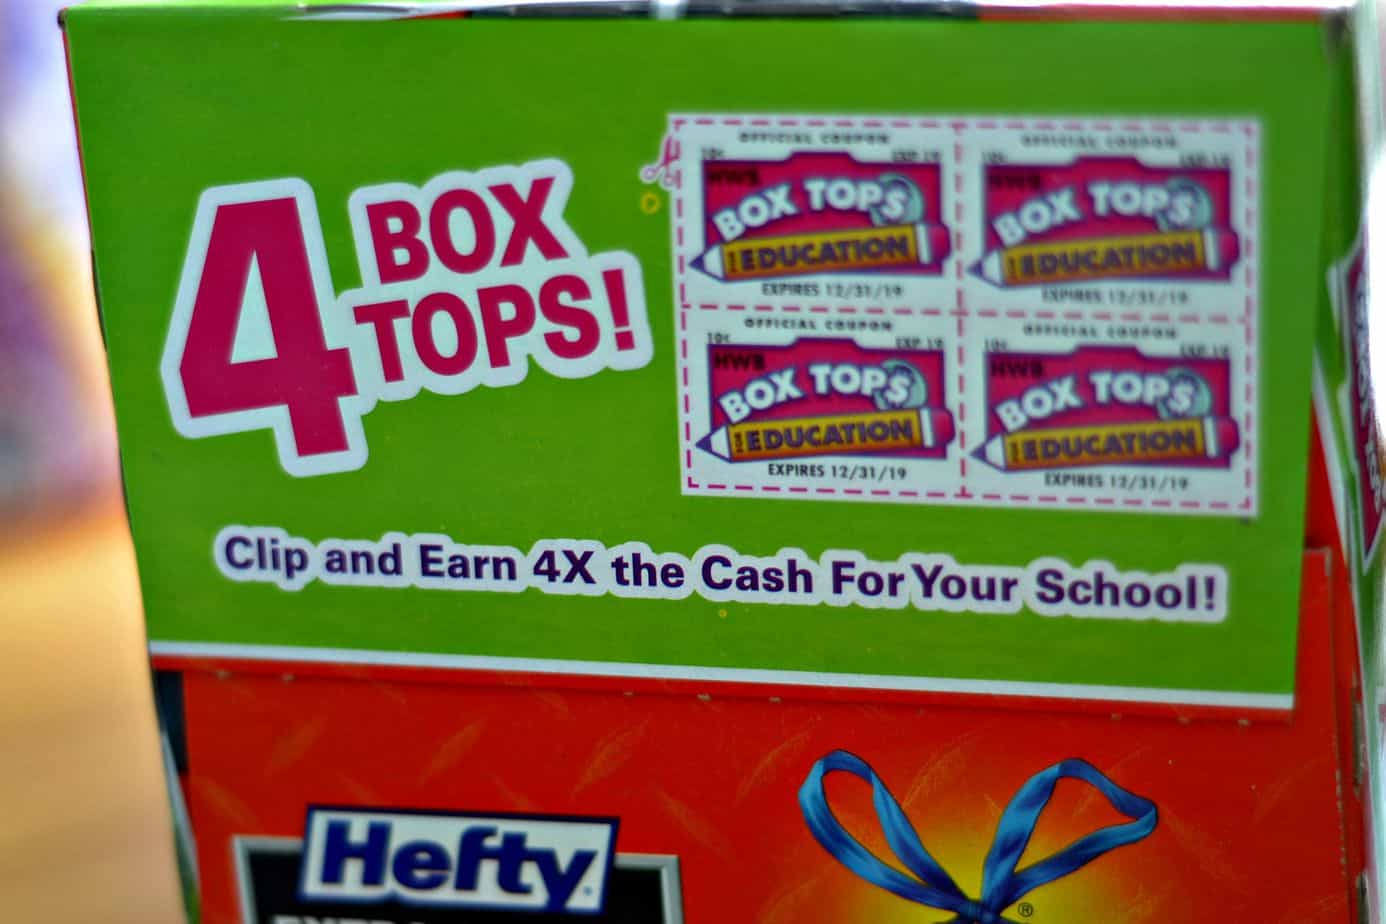 #Hefty4BoxTops-Four-Box-Tops